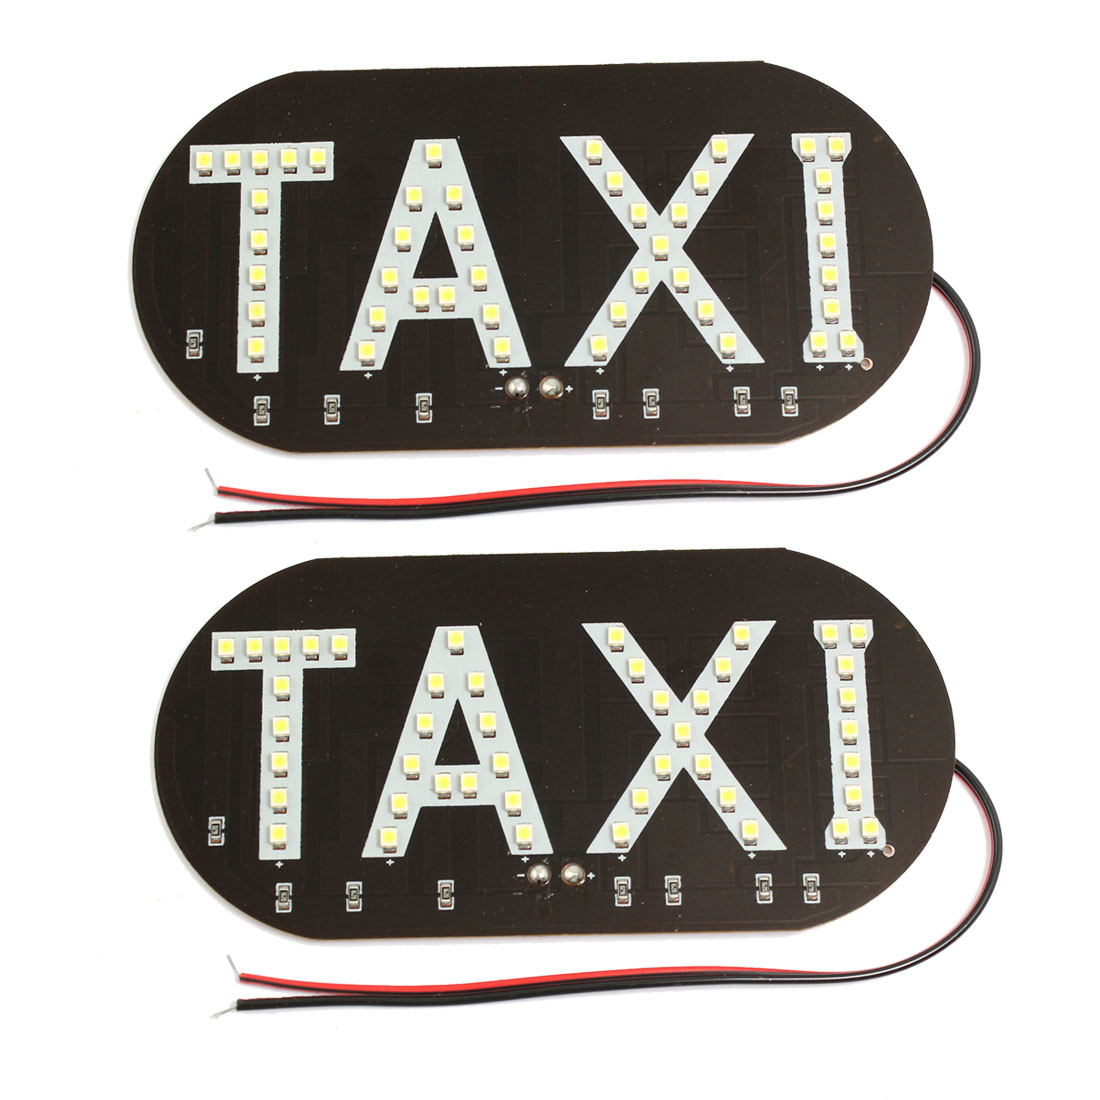 Car Windscreen Cab Sign White 45 LED Taxi Light Lamp DC 12V 2 Pcs